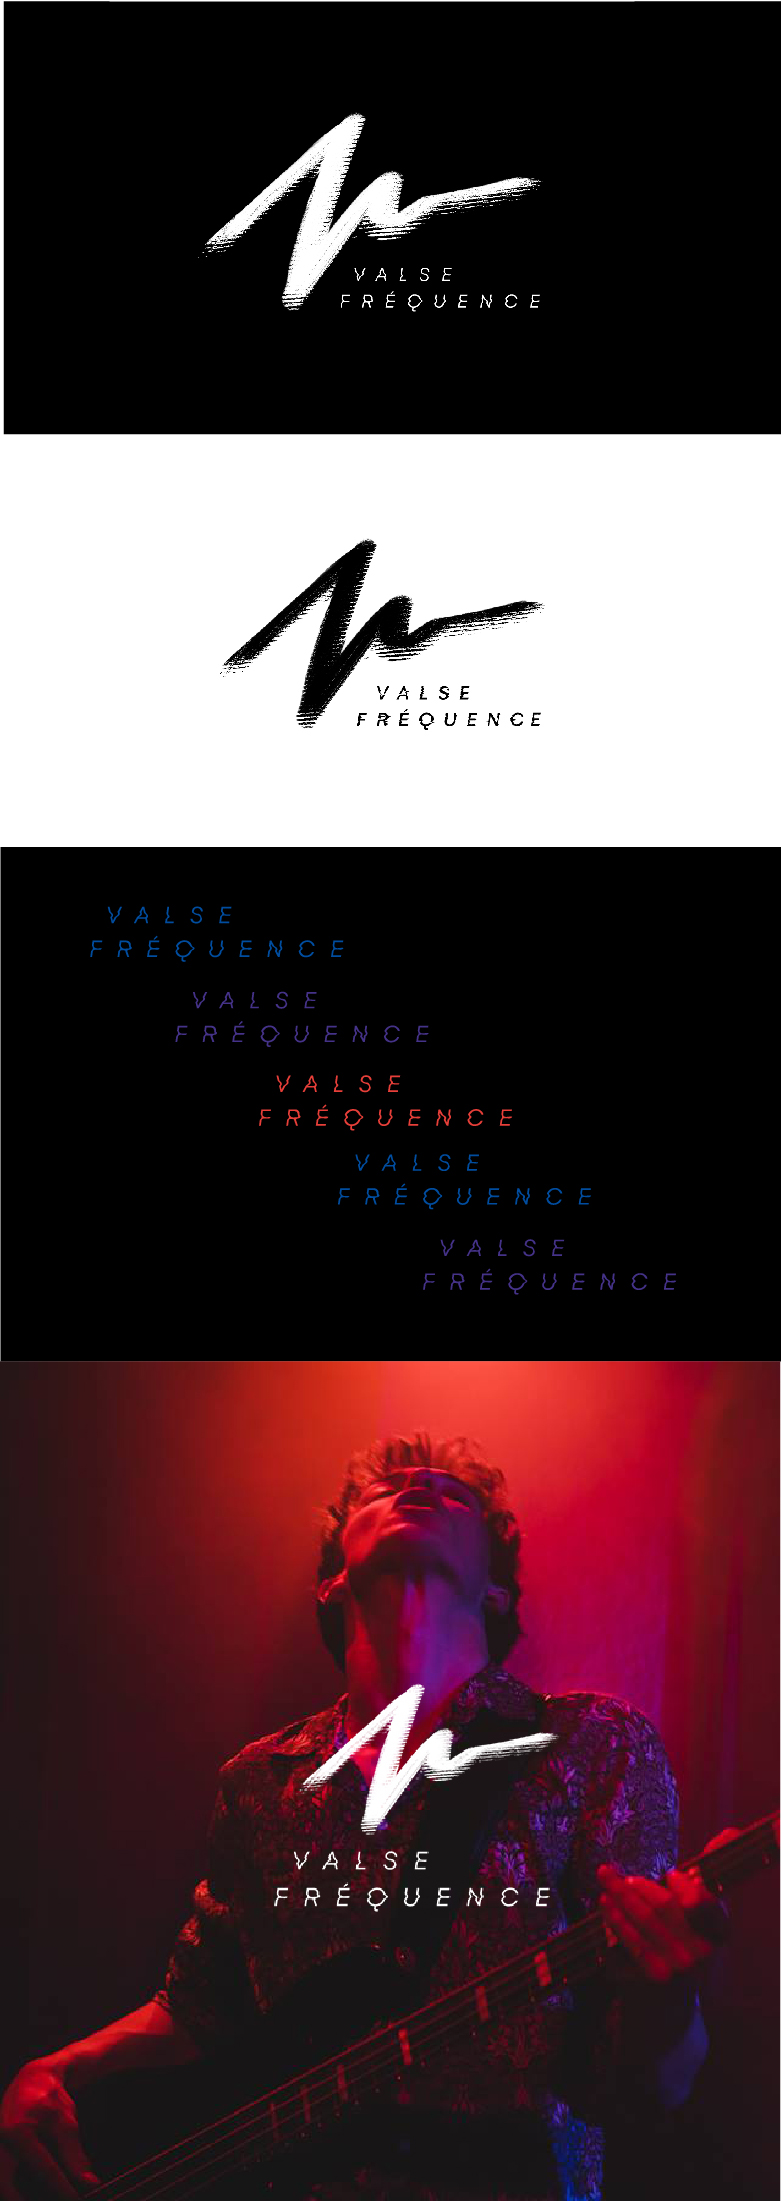 Valse_frequence